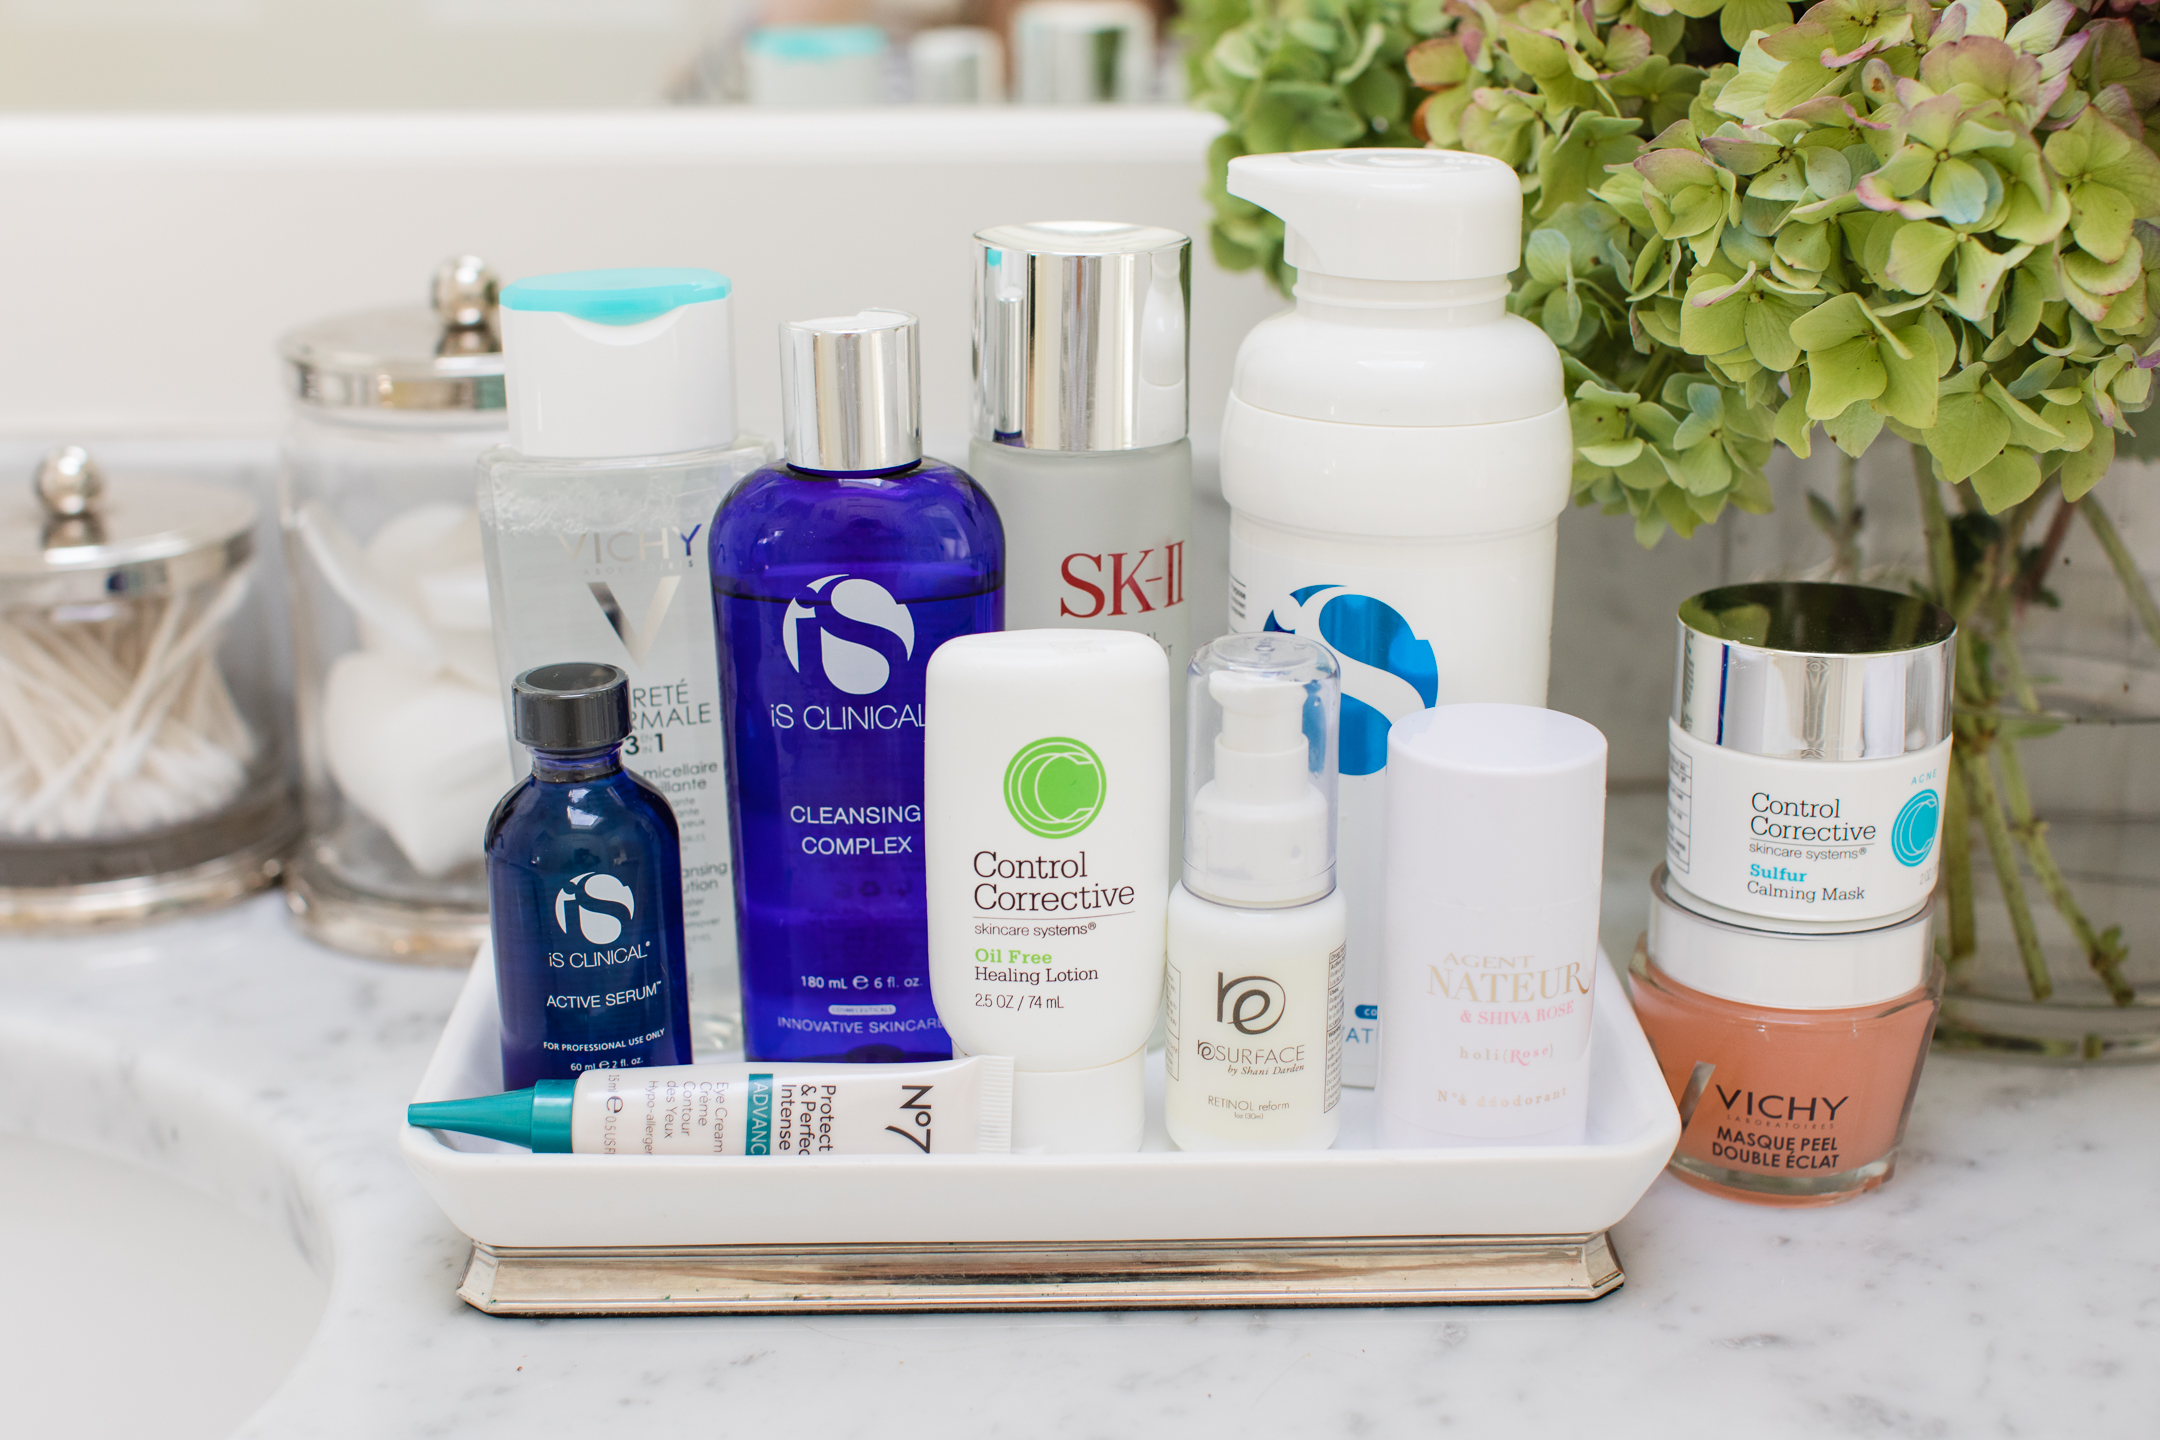 Eva Amurri shares her skincare routine and favorite products